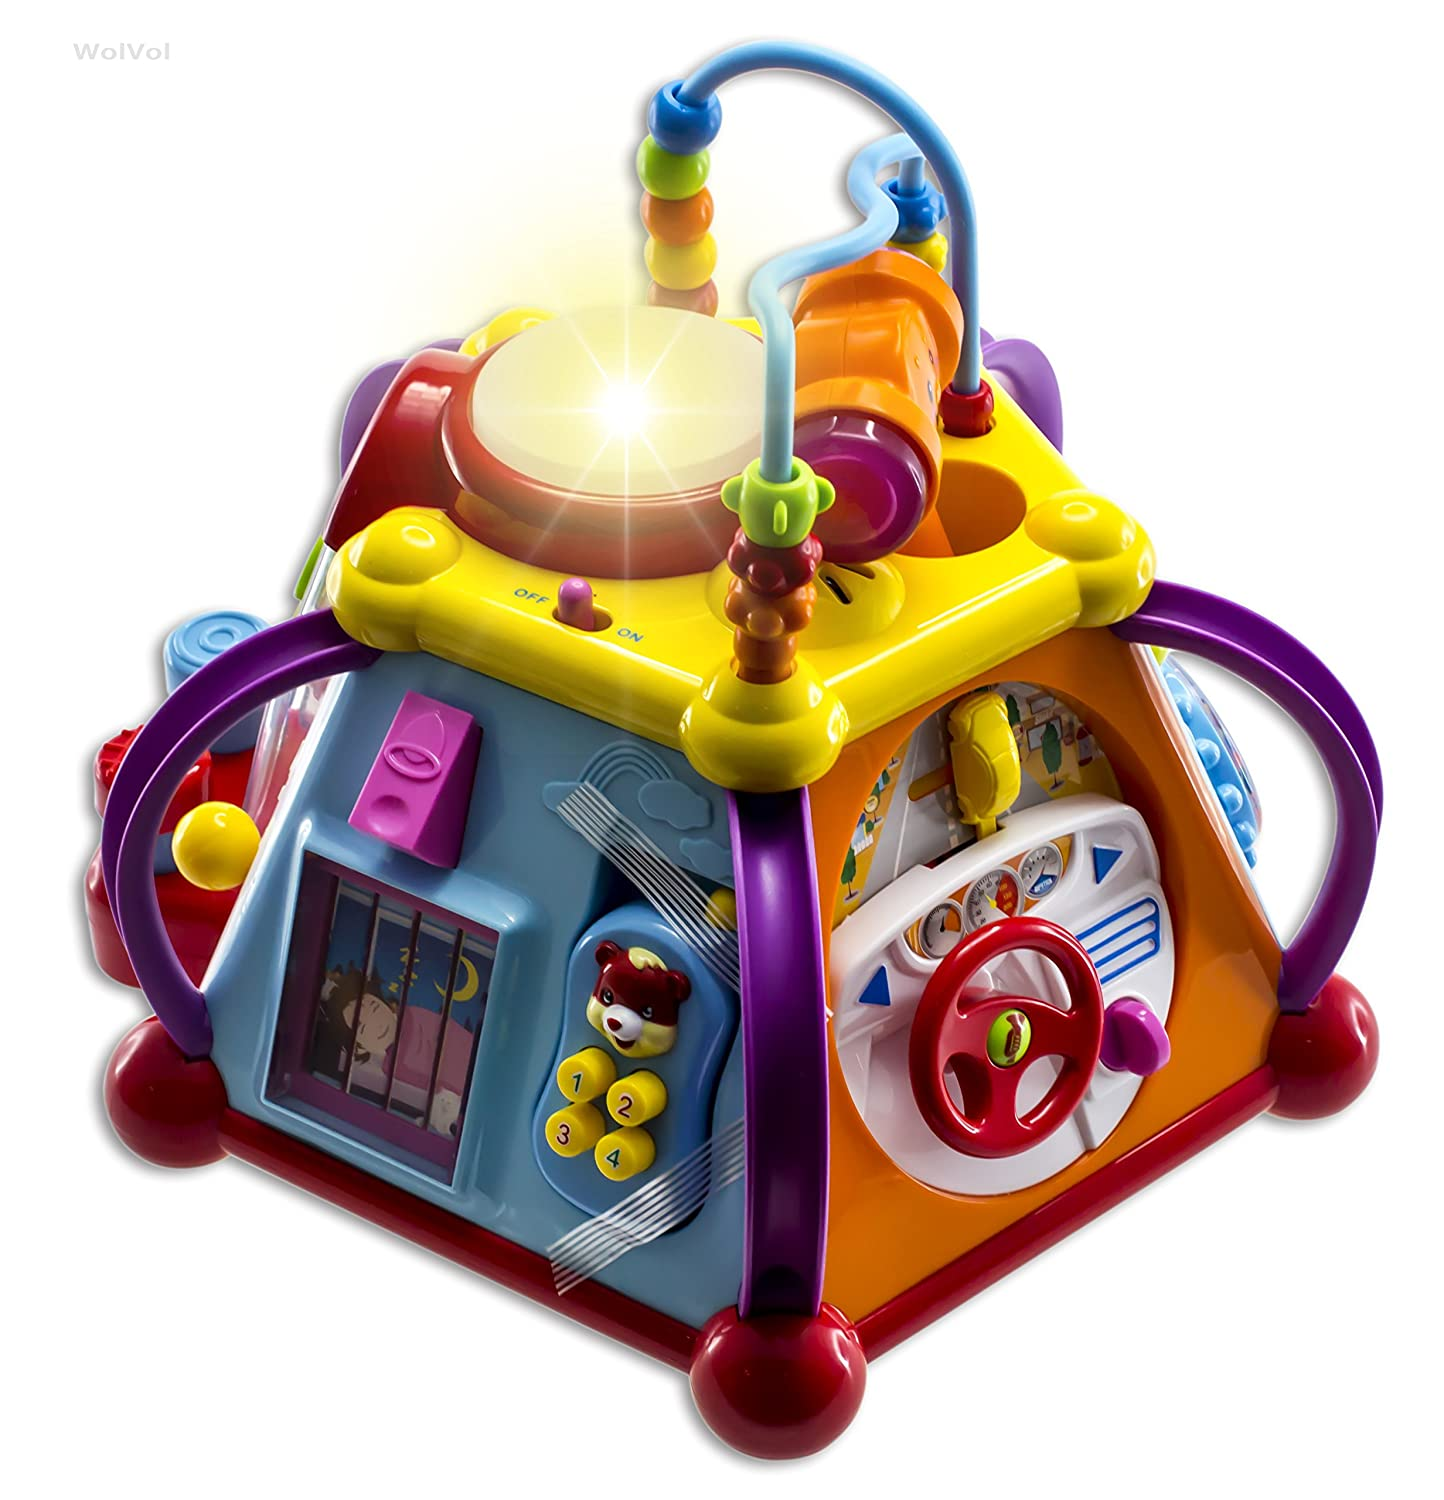 WolVol Musical Activity Cube Play Center with Lights, 15 Functions & Skills - Great Gift Toys for the Little Ones sassy seat doorway jumper 5 toys with musical play mat